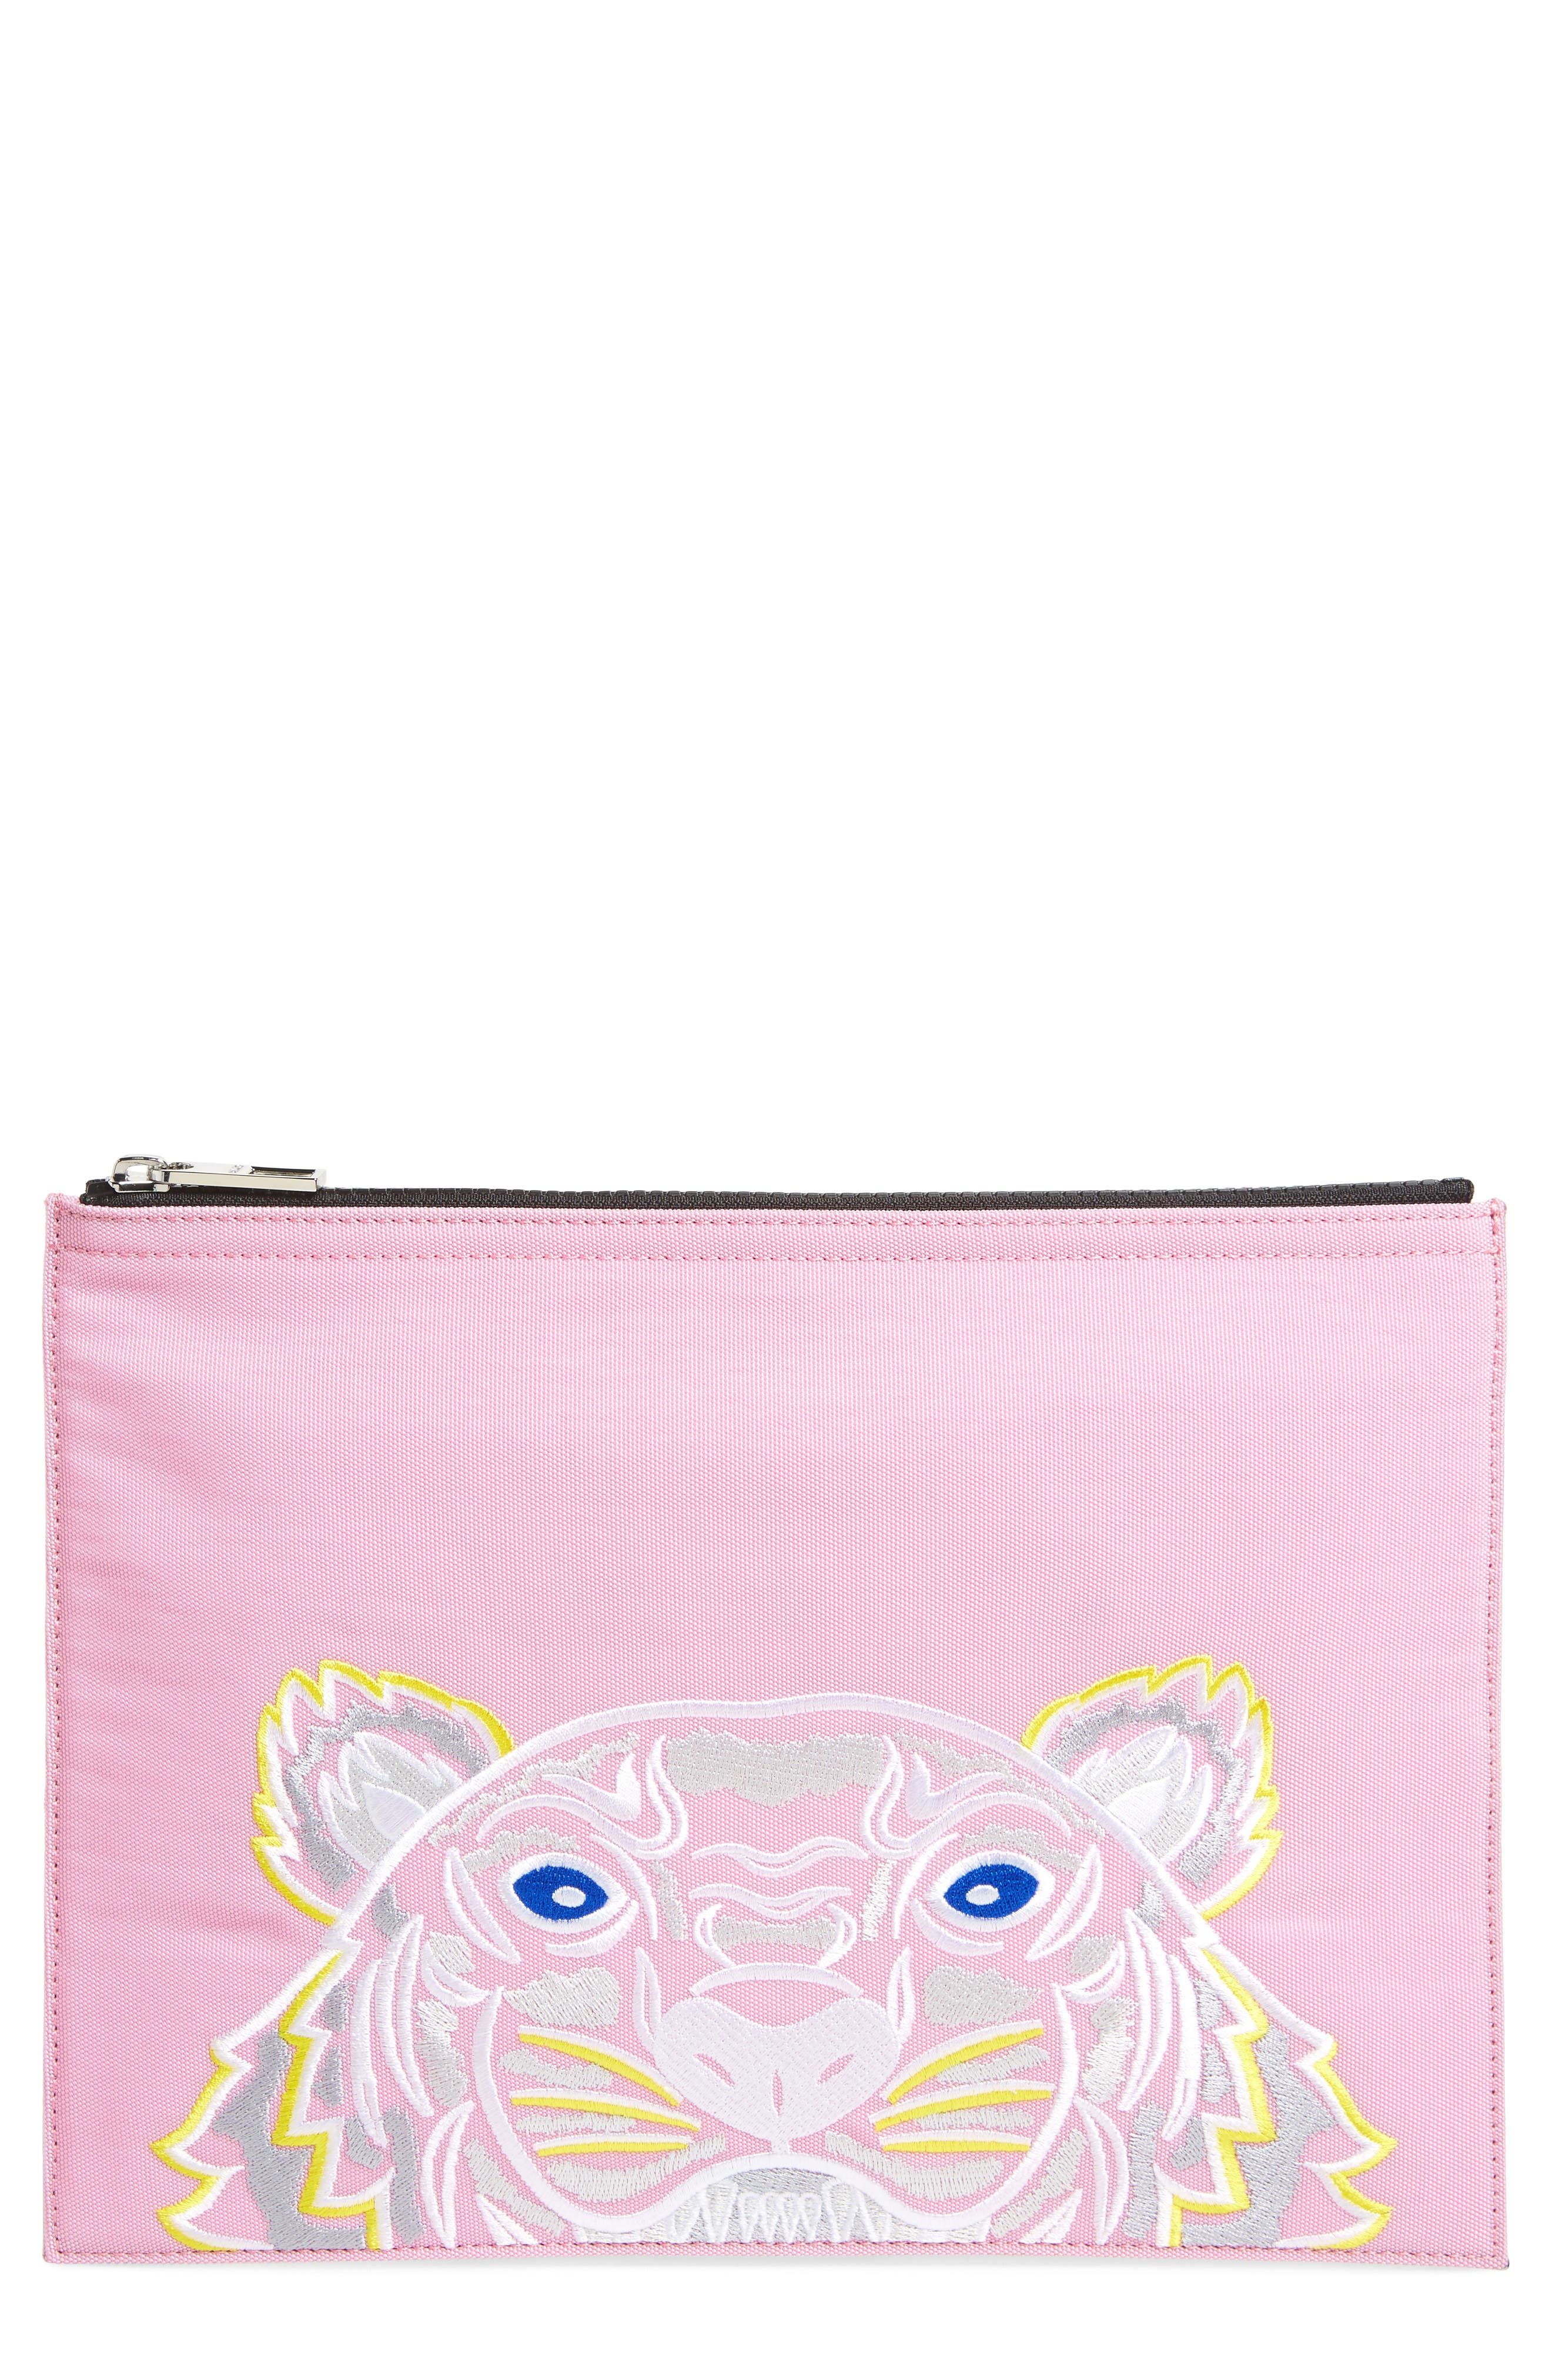 Kanvas Tiger Embroidered A4 Pouch,                         Main,                         color, Flamingo Pink